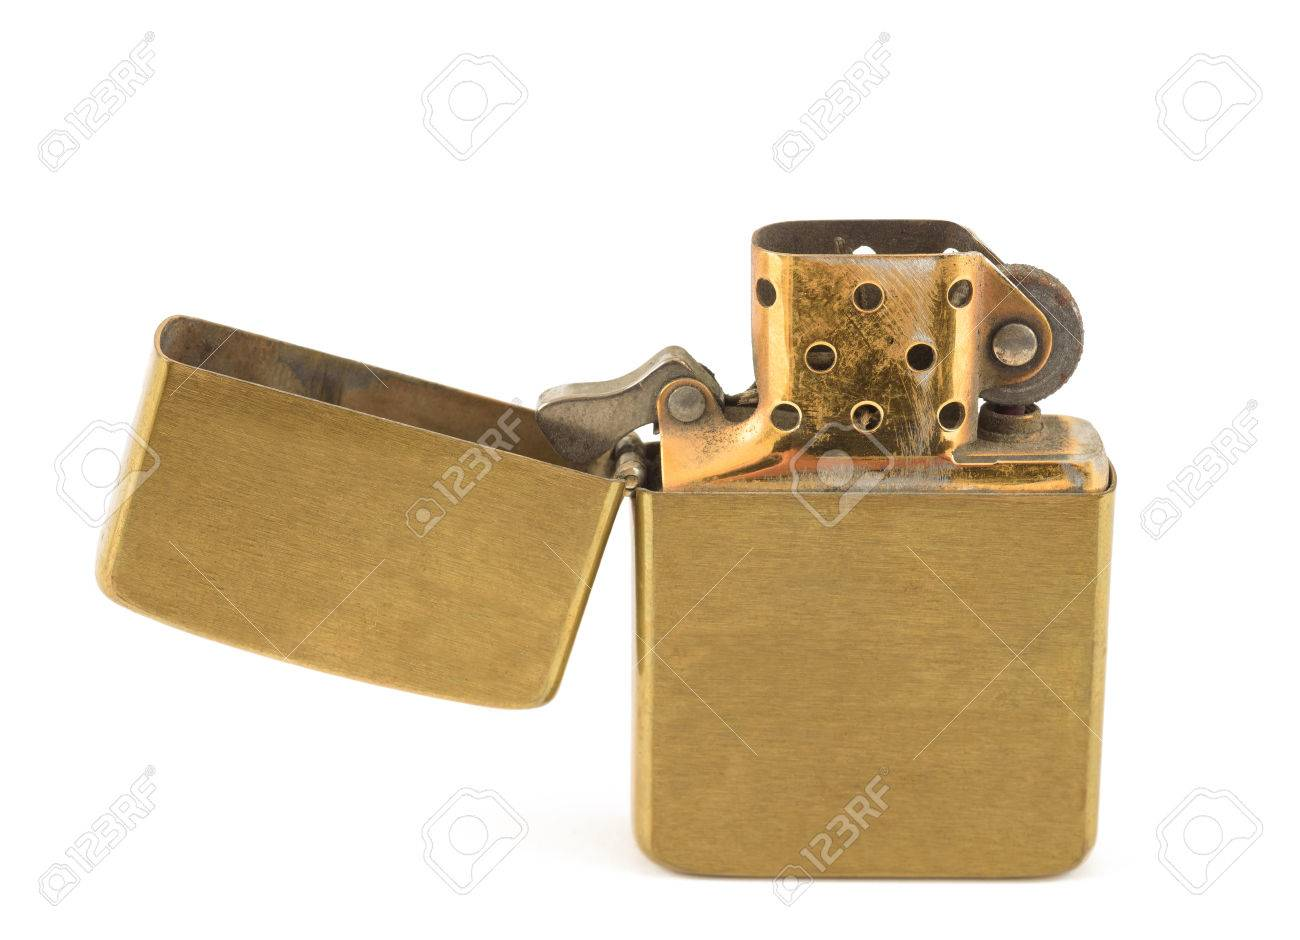 Zippo lighter value old Table lighters